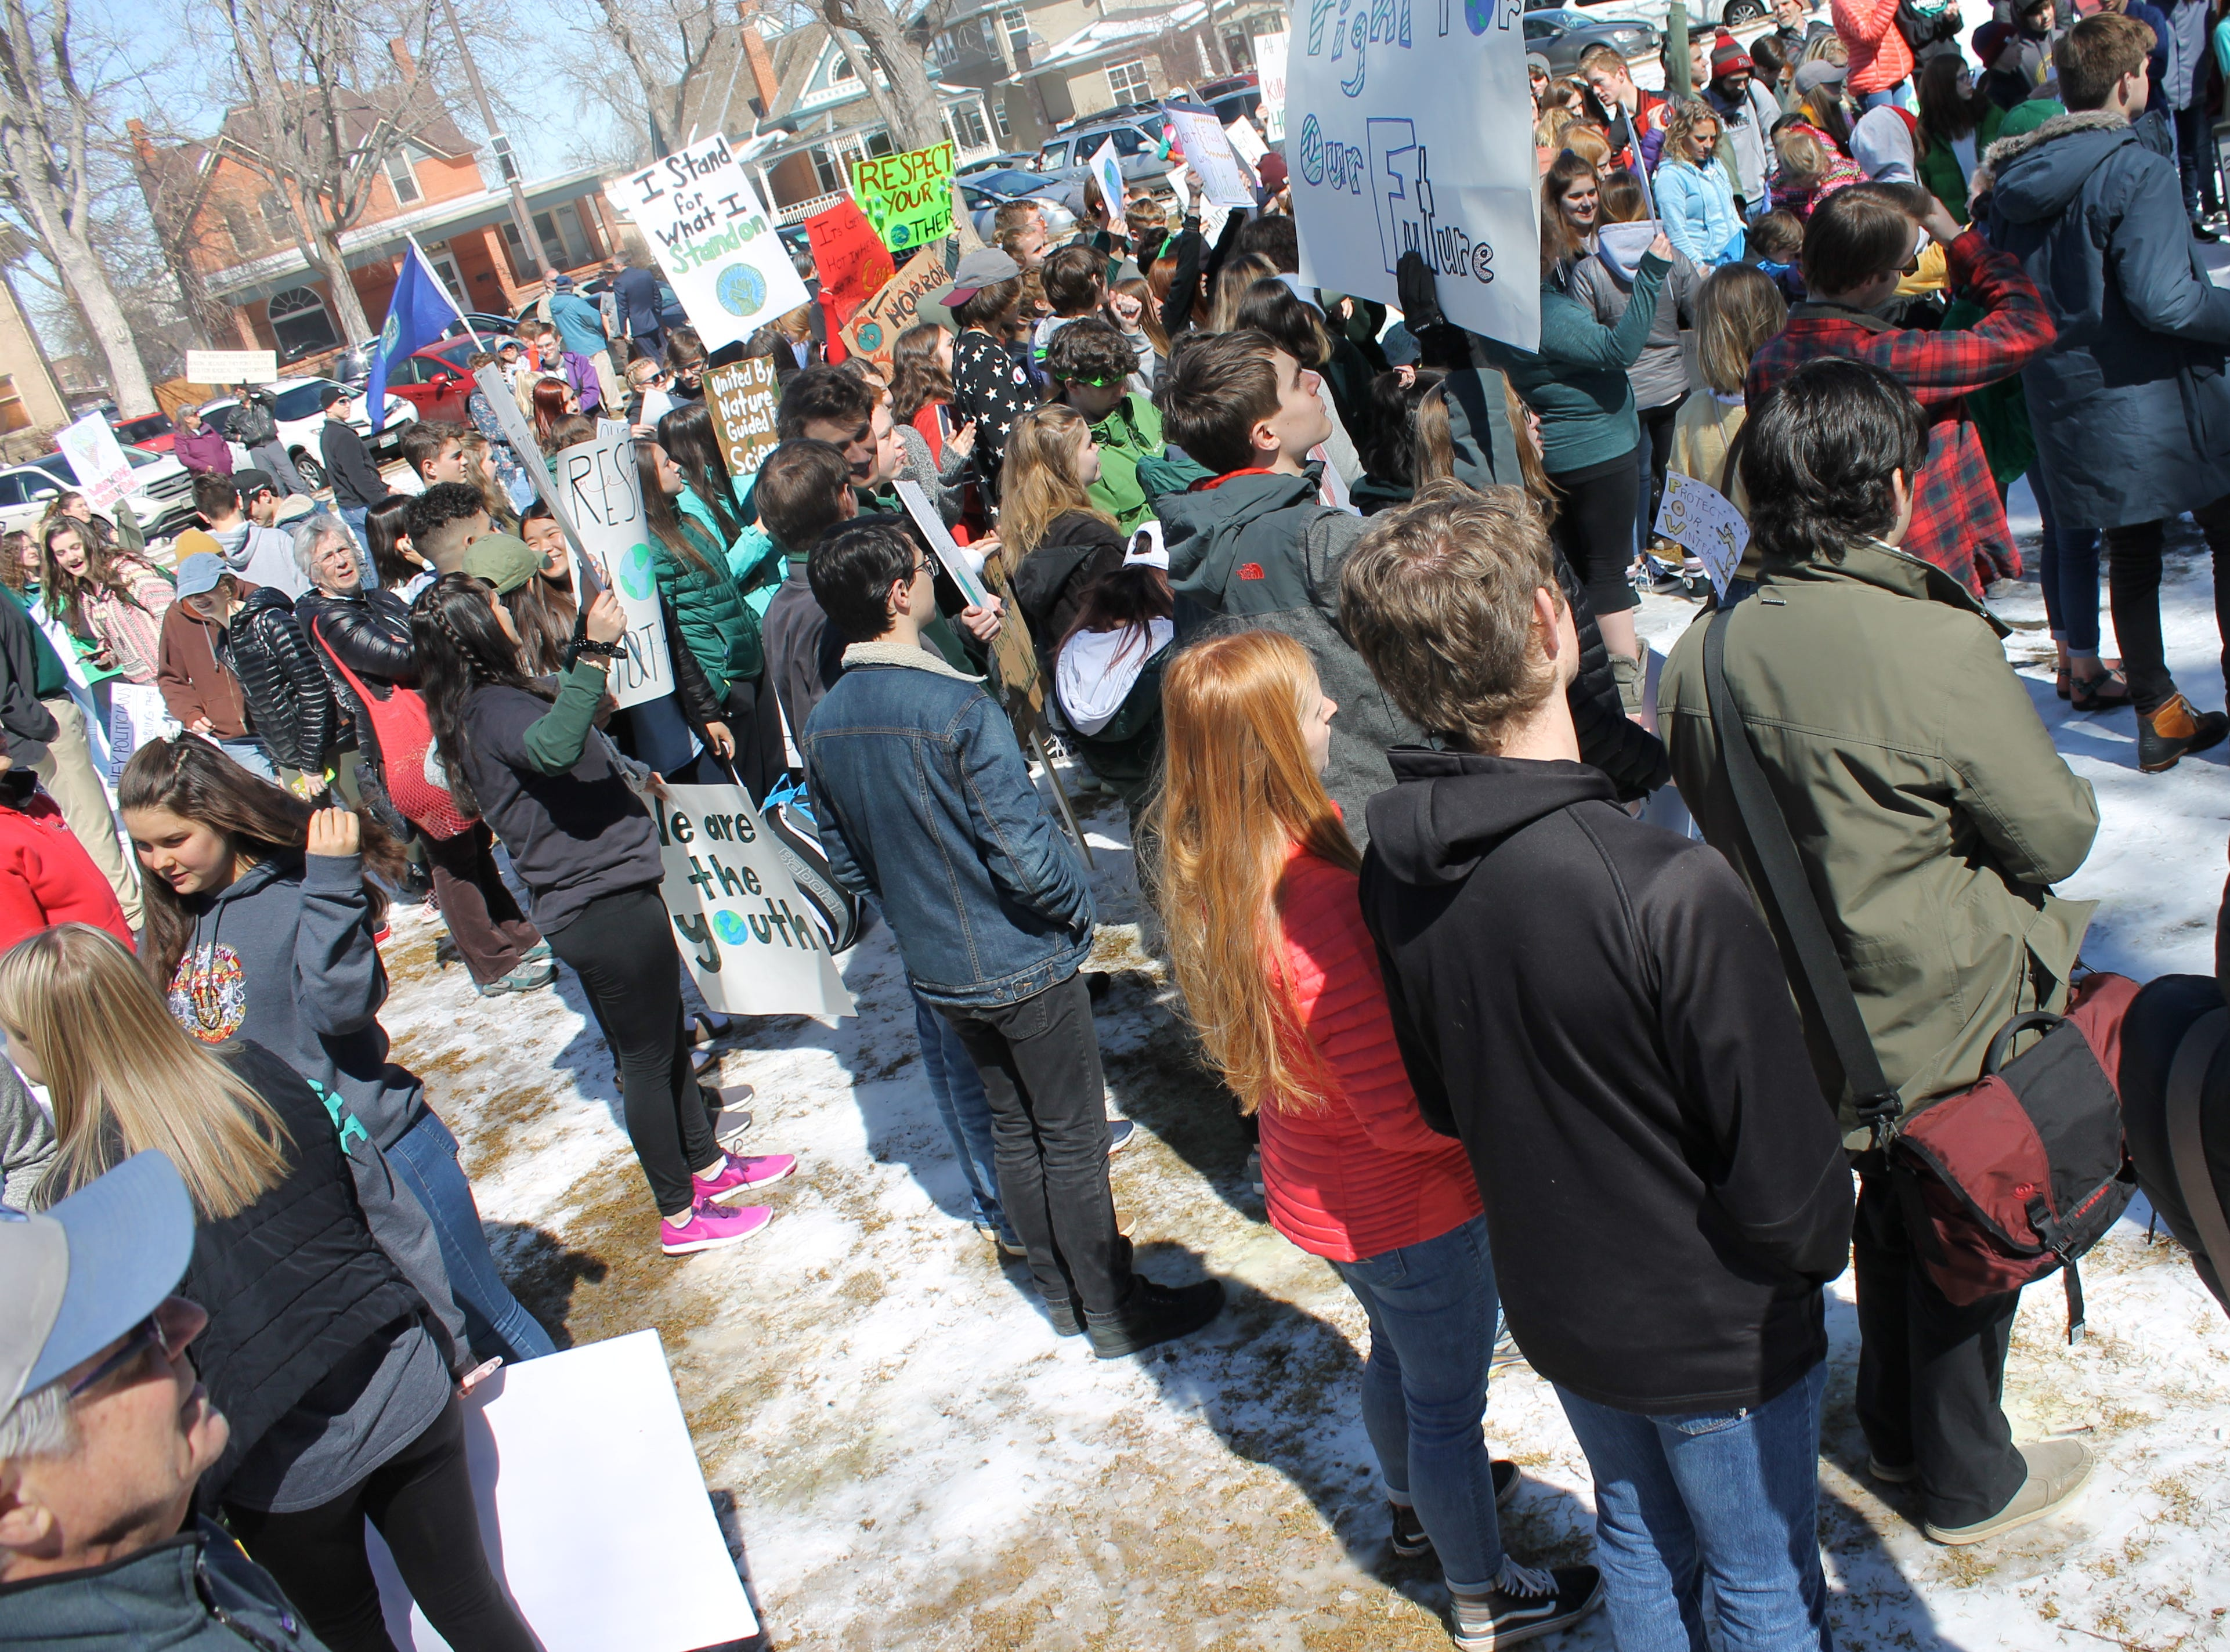 Hundreds of students from Thompson School District and Poudre School District skipped school March 15, 2019 to participate in a worldwide youth strike to combat climate change.